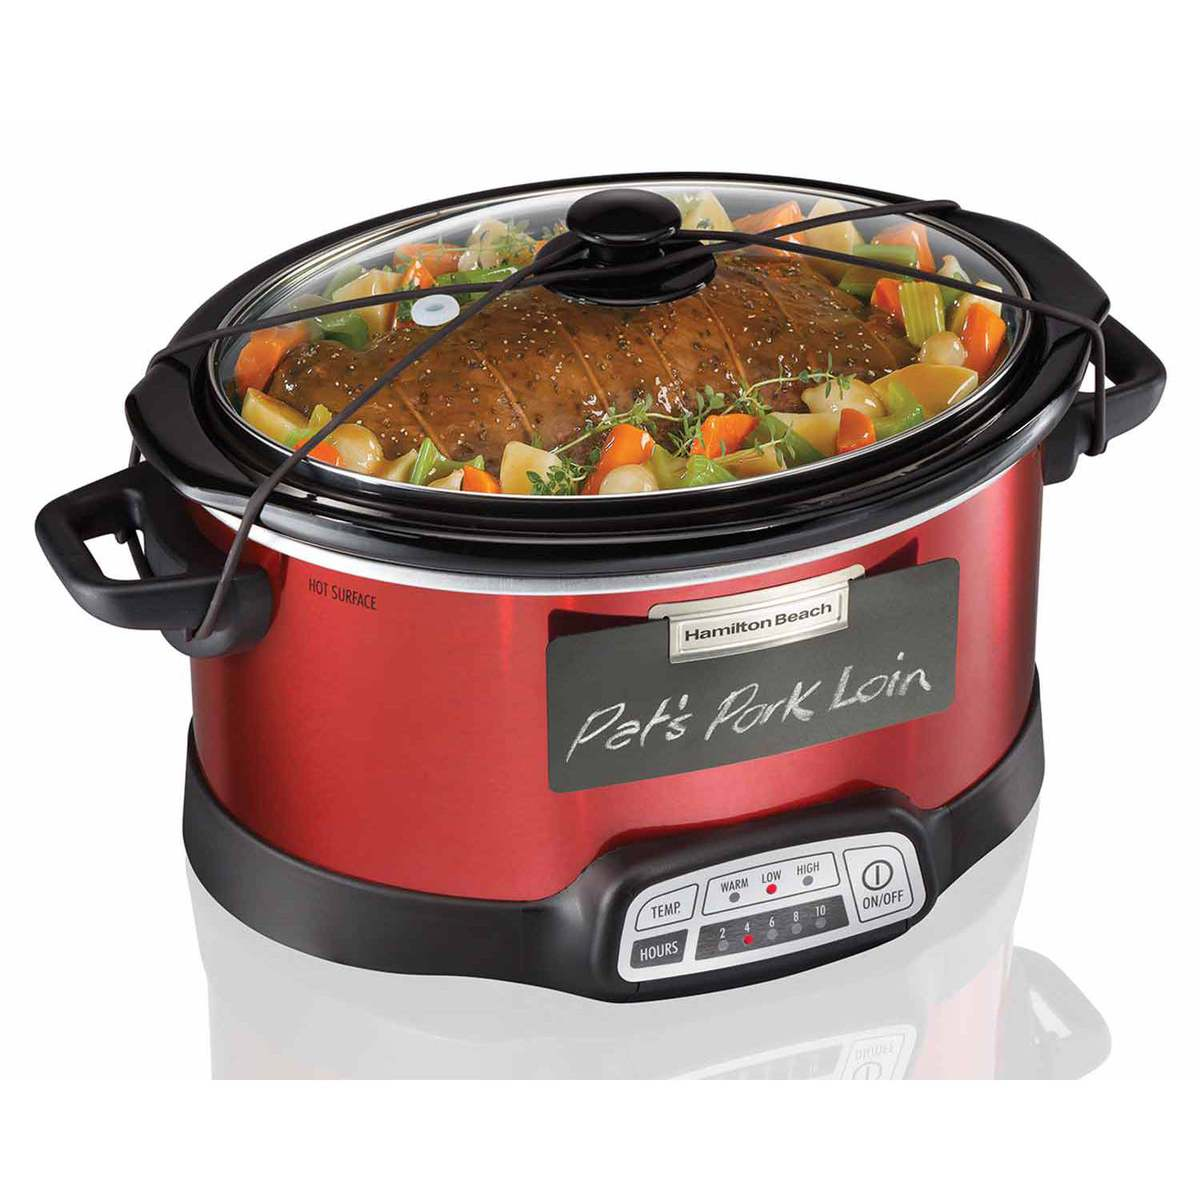 Chalkboard Panel 5 Qt. Slow Cooker (33551)